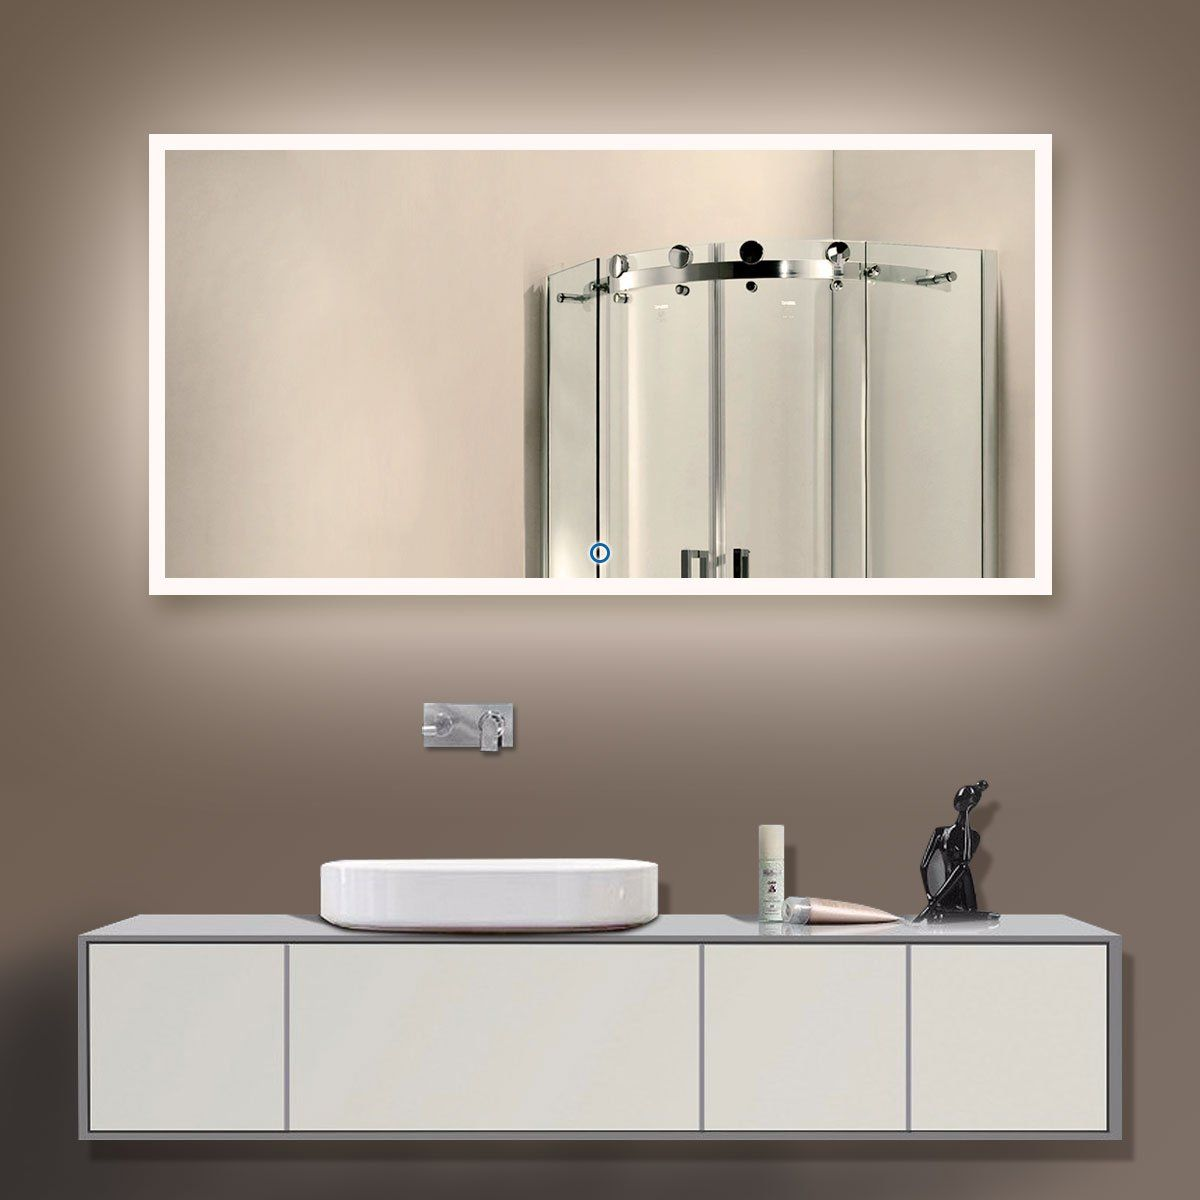 Dp Home Large Horizontal Rectangle Mirror Led Illuminated Backlit Wall Mount Bathroom Vanity Mir Bathroom Mirror Backlit Bathroom Mirror Modern Bathroom Design